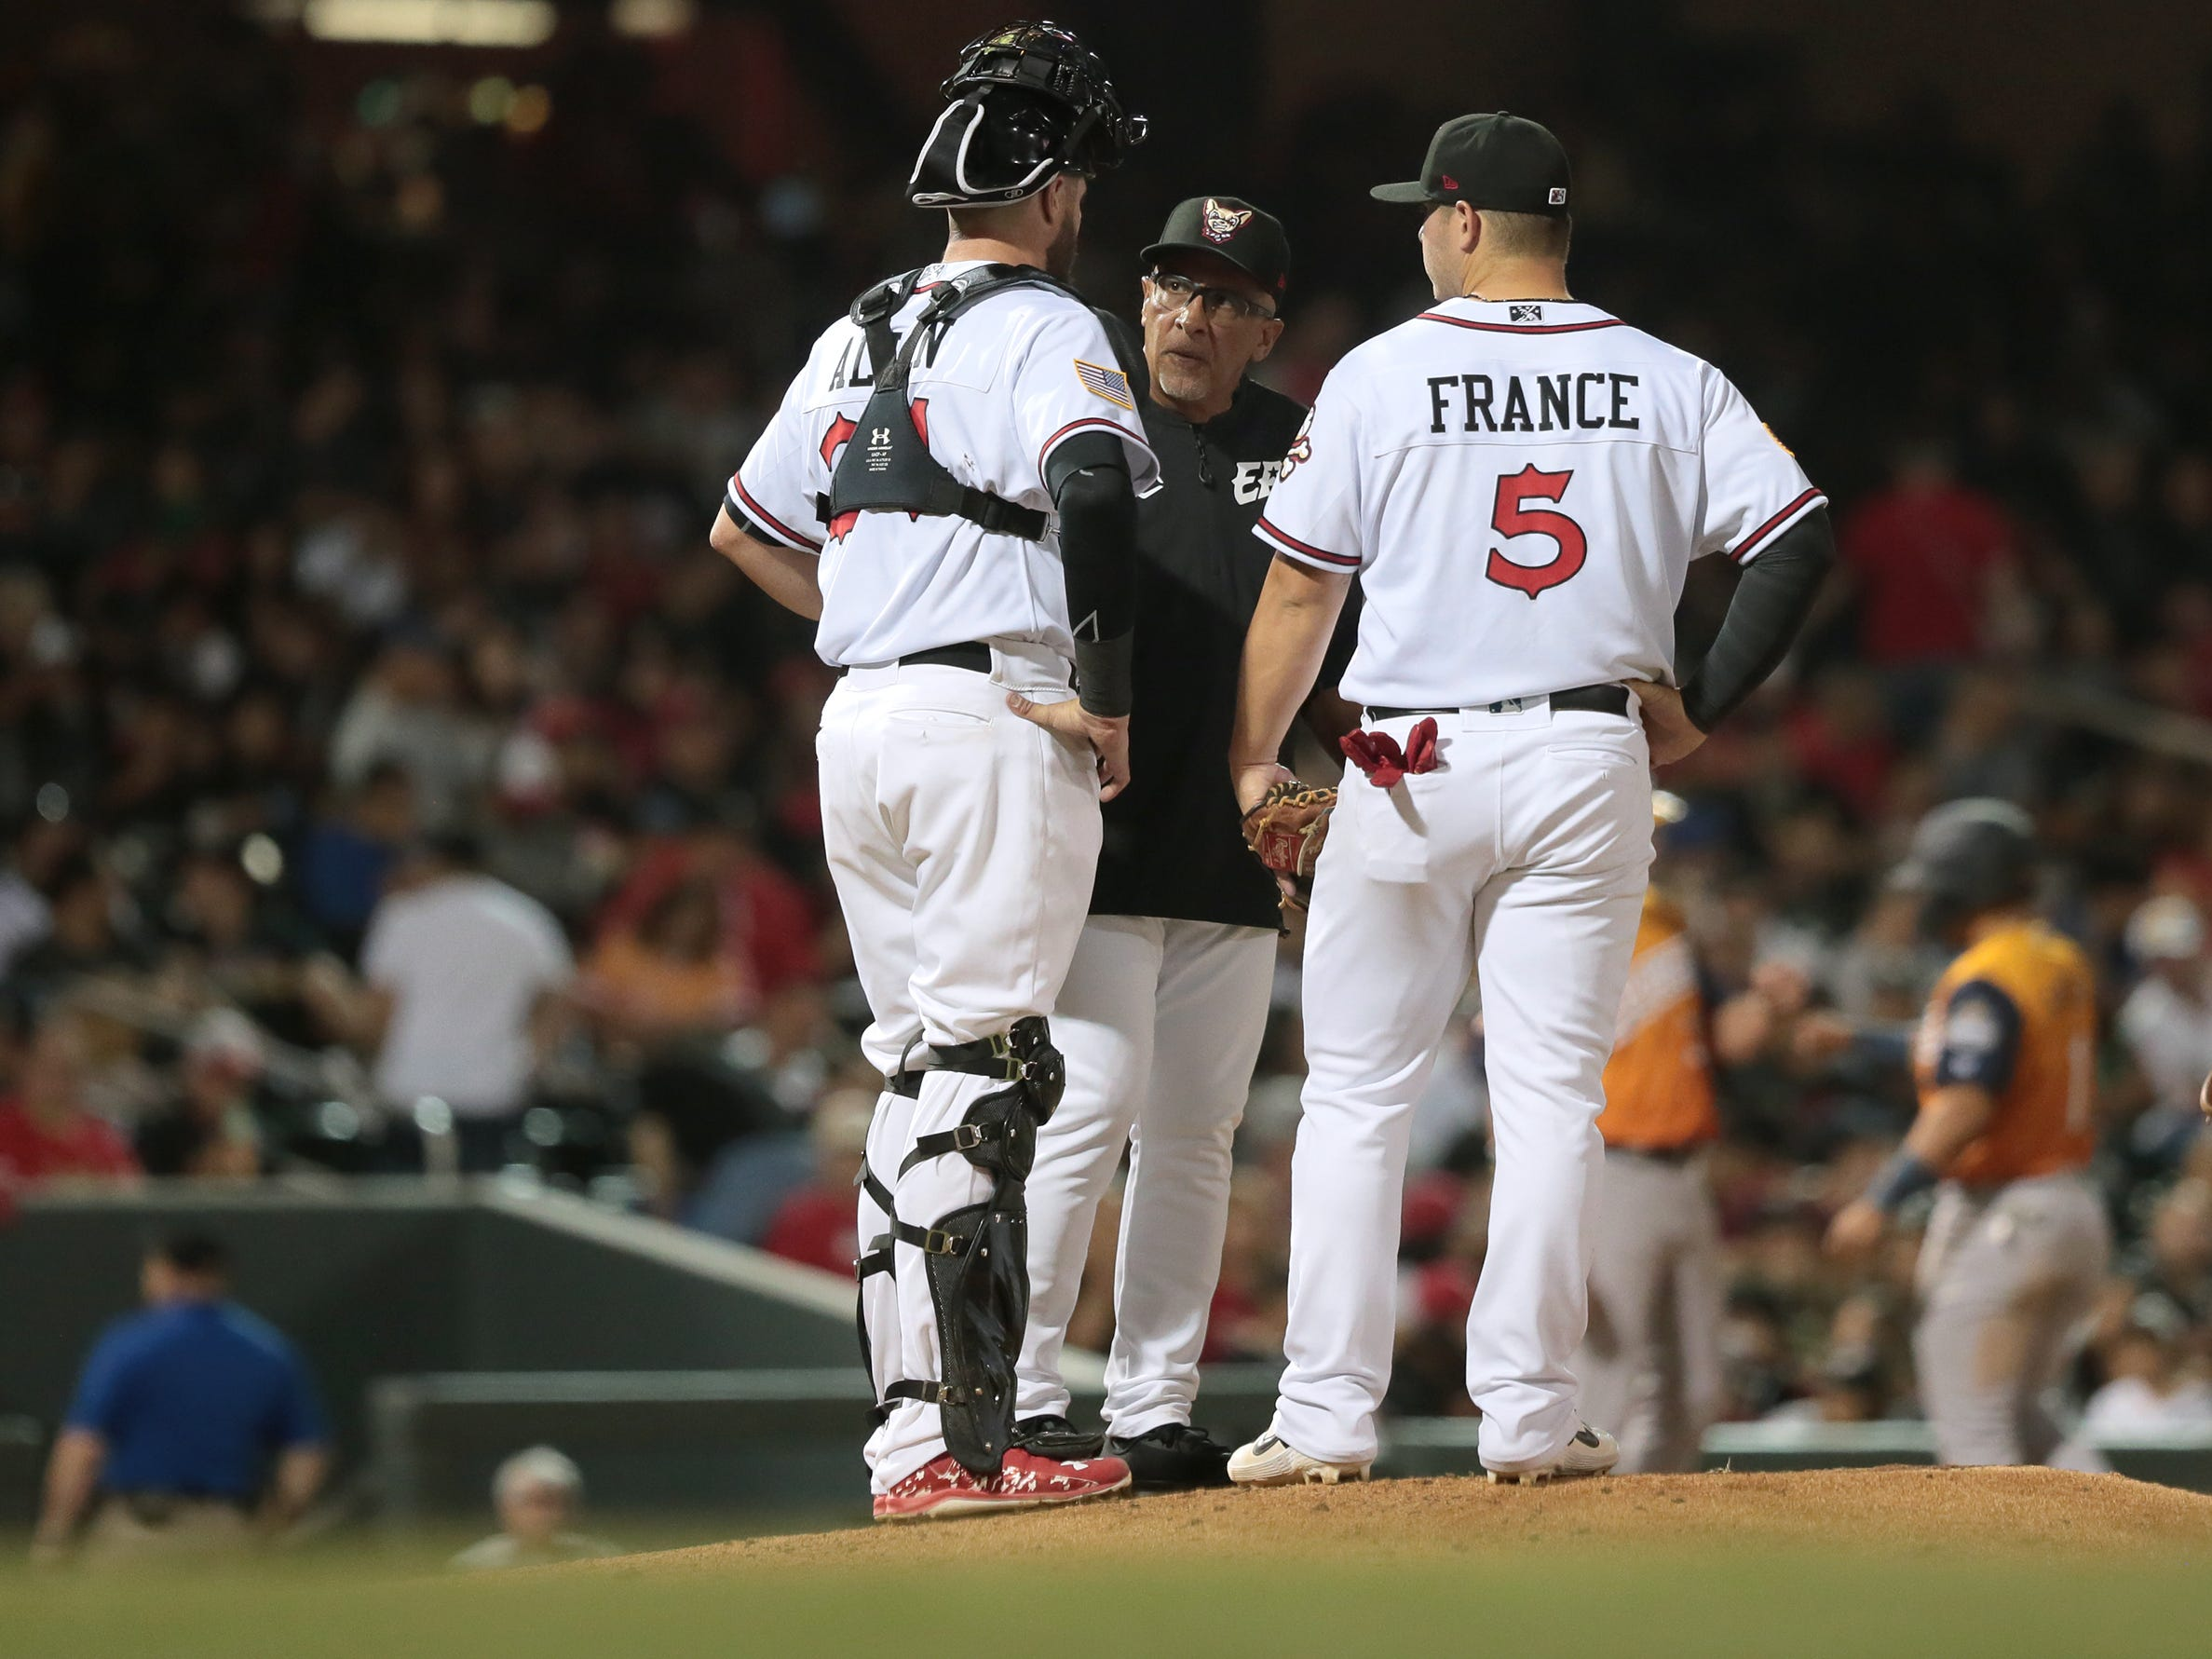 El Paso's new skipper Edwin Rodriguez holds his first mound meeting on opening night Thursday.